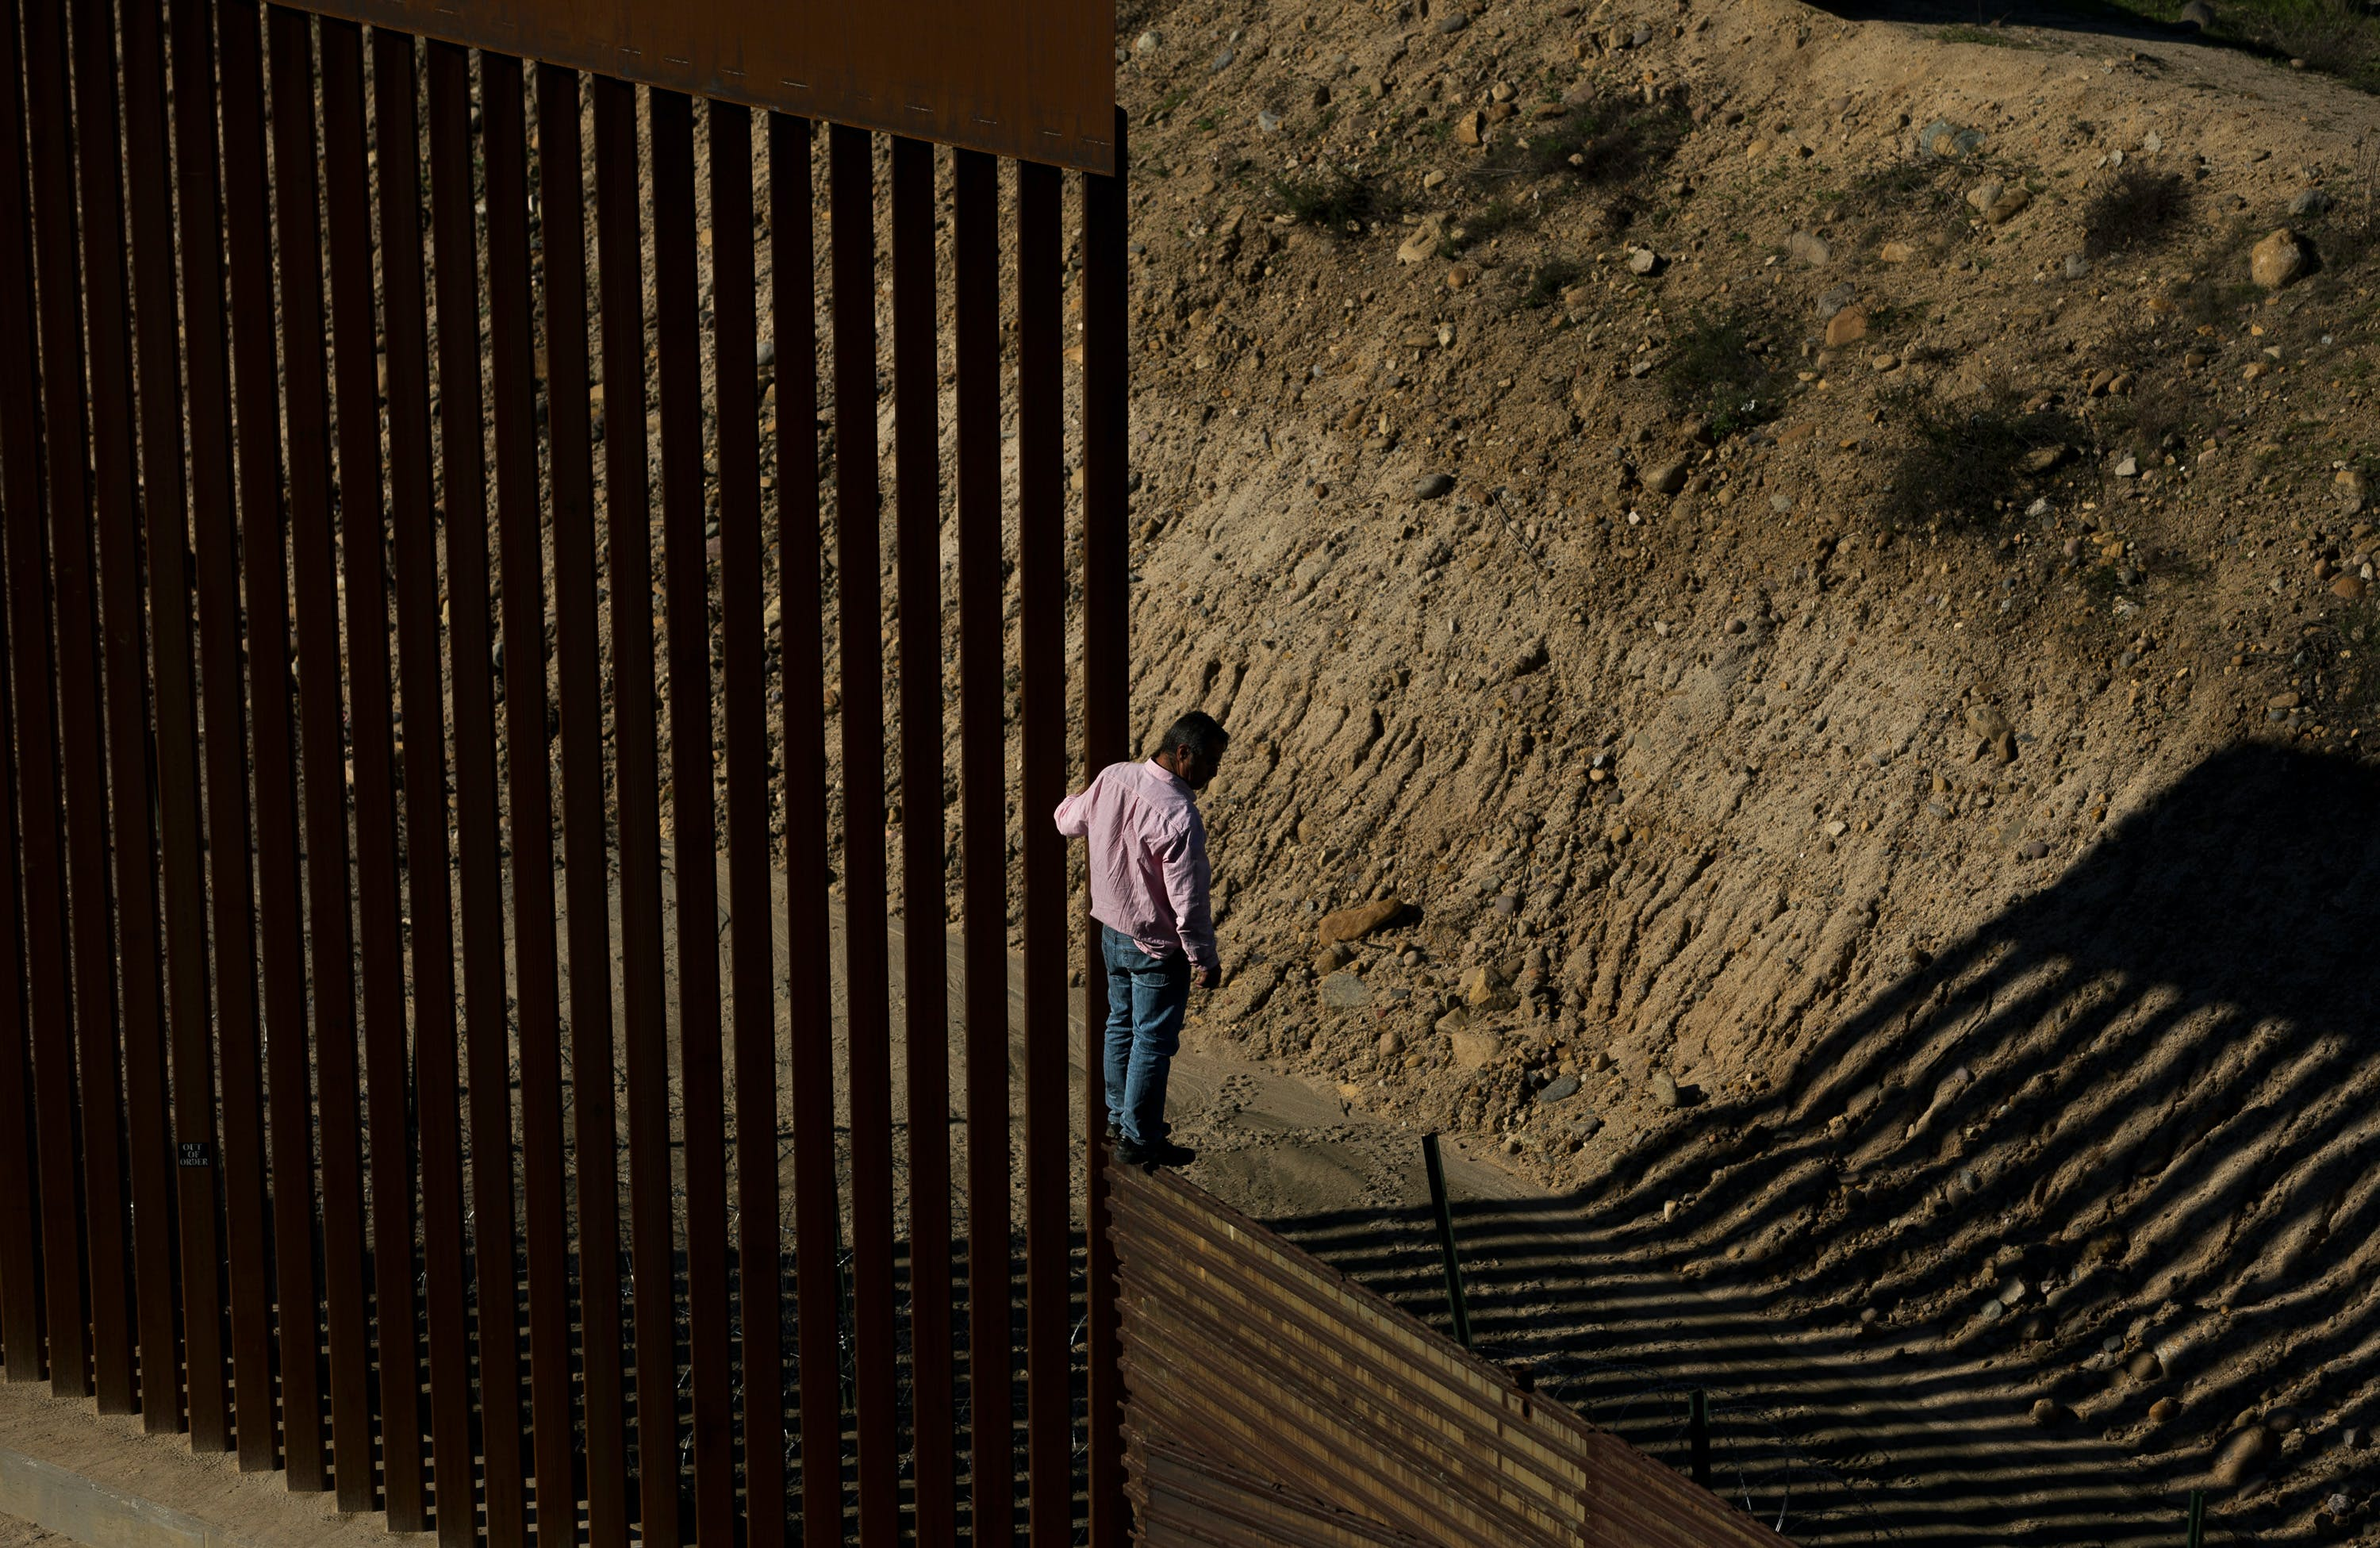 A migrant stands on the border fence before jumping to get into the U.S. side to San Diego, Calif., from Tijuana, Mexico, Friday, Dec. 28, 2018. Discouraged by the long wait to apply for asylum through official ports of entry, many migrants from recent caravans are choosing to cross the U.S. border wall and hand themselves in to border patrol agents. (AP Photo/Daniel Ochoa de Olza)